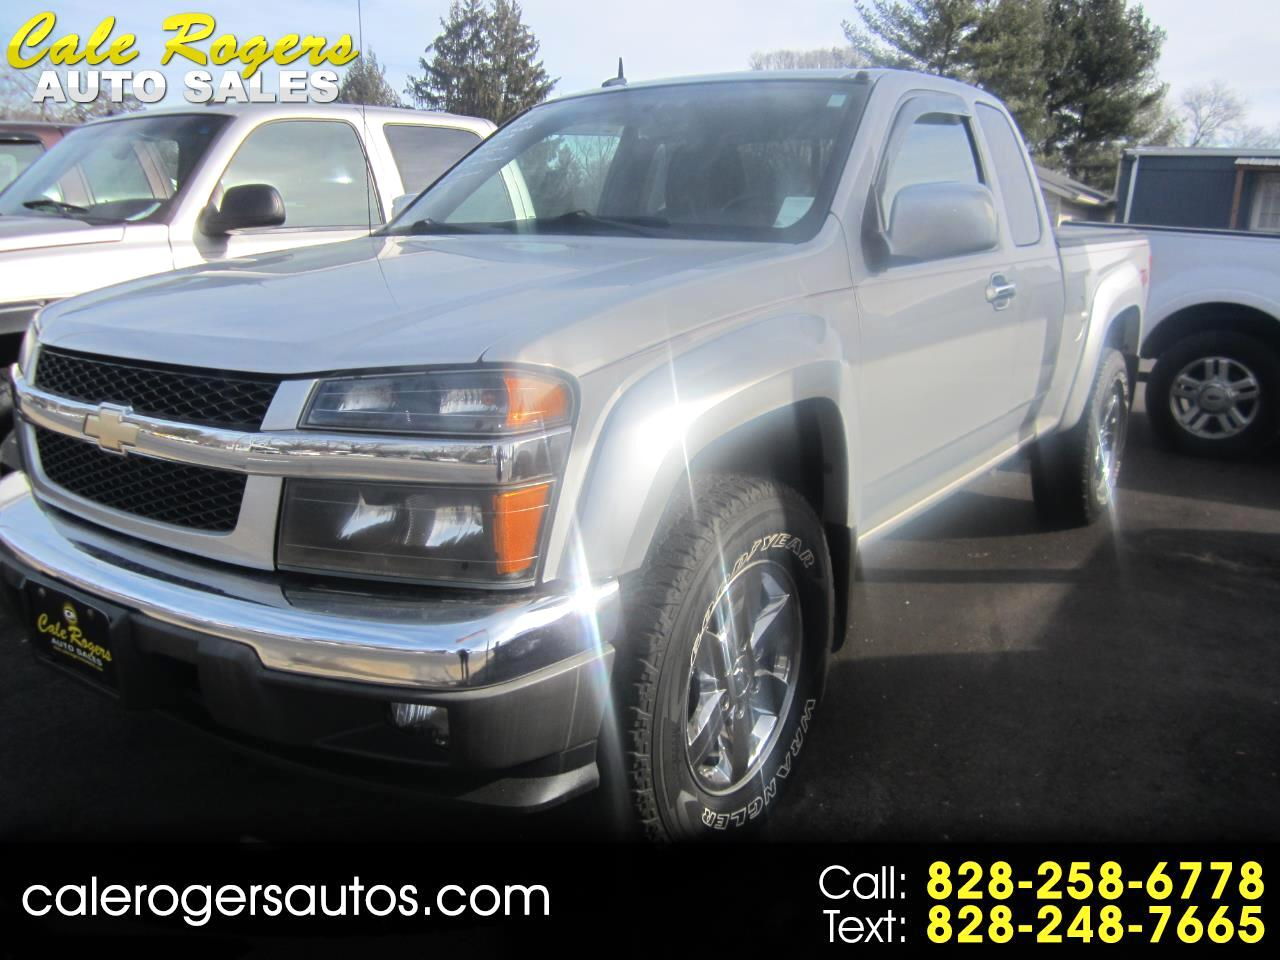 2011 Chevrolet Colorado 2LT Ext. Cab 4WD